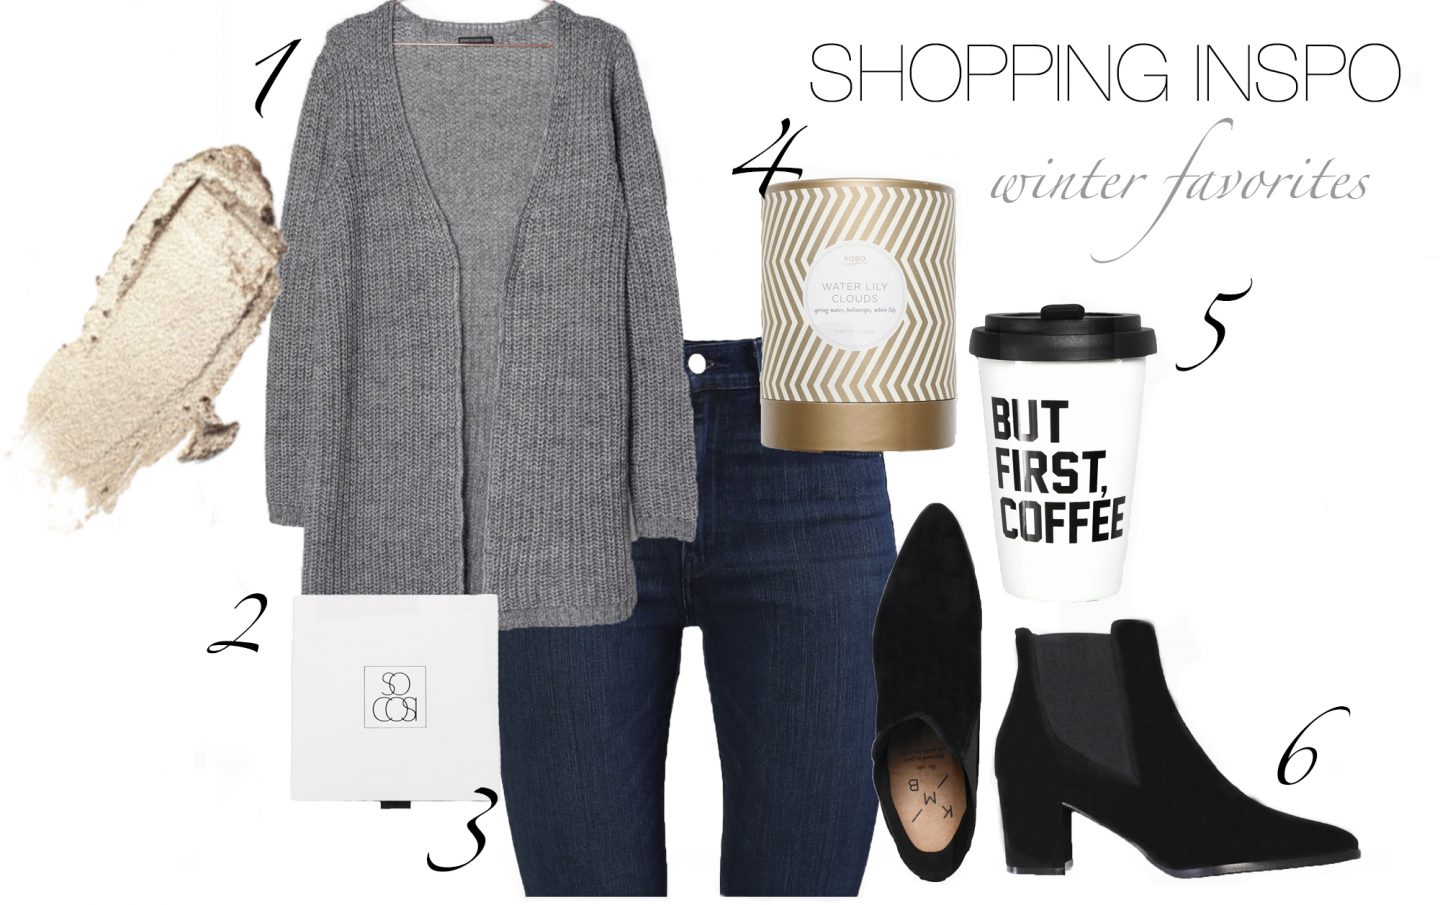 Editor's choice #11-Winter favorites